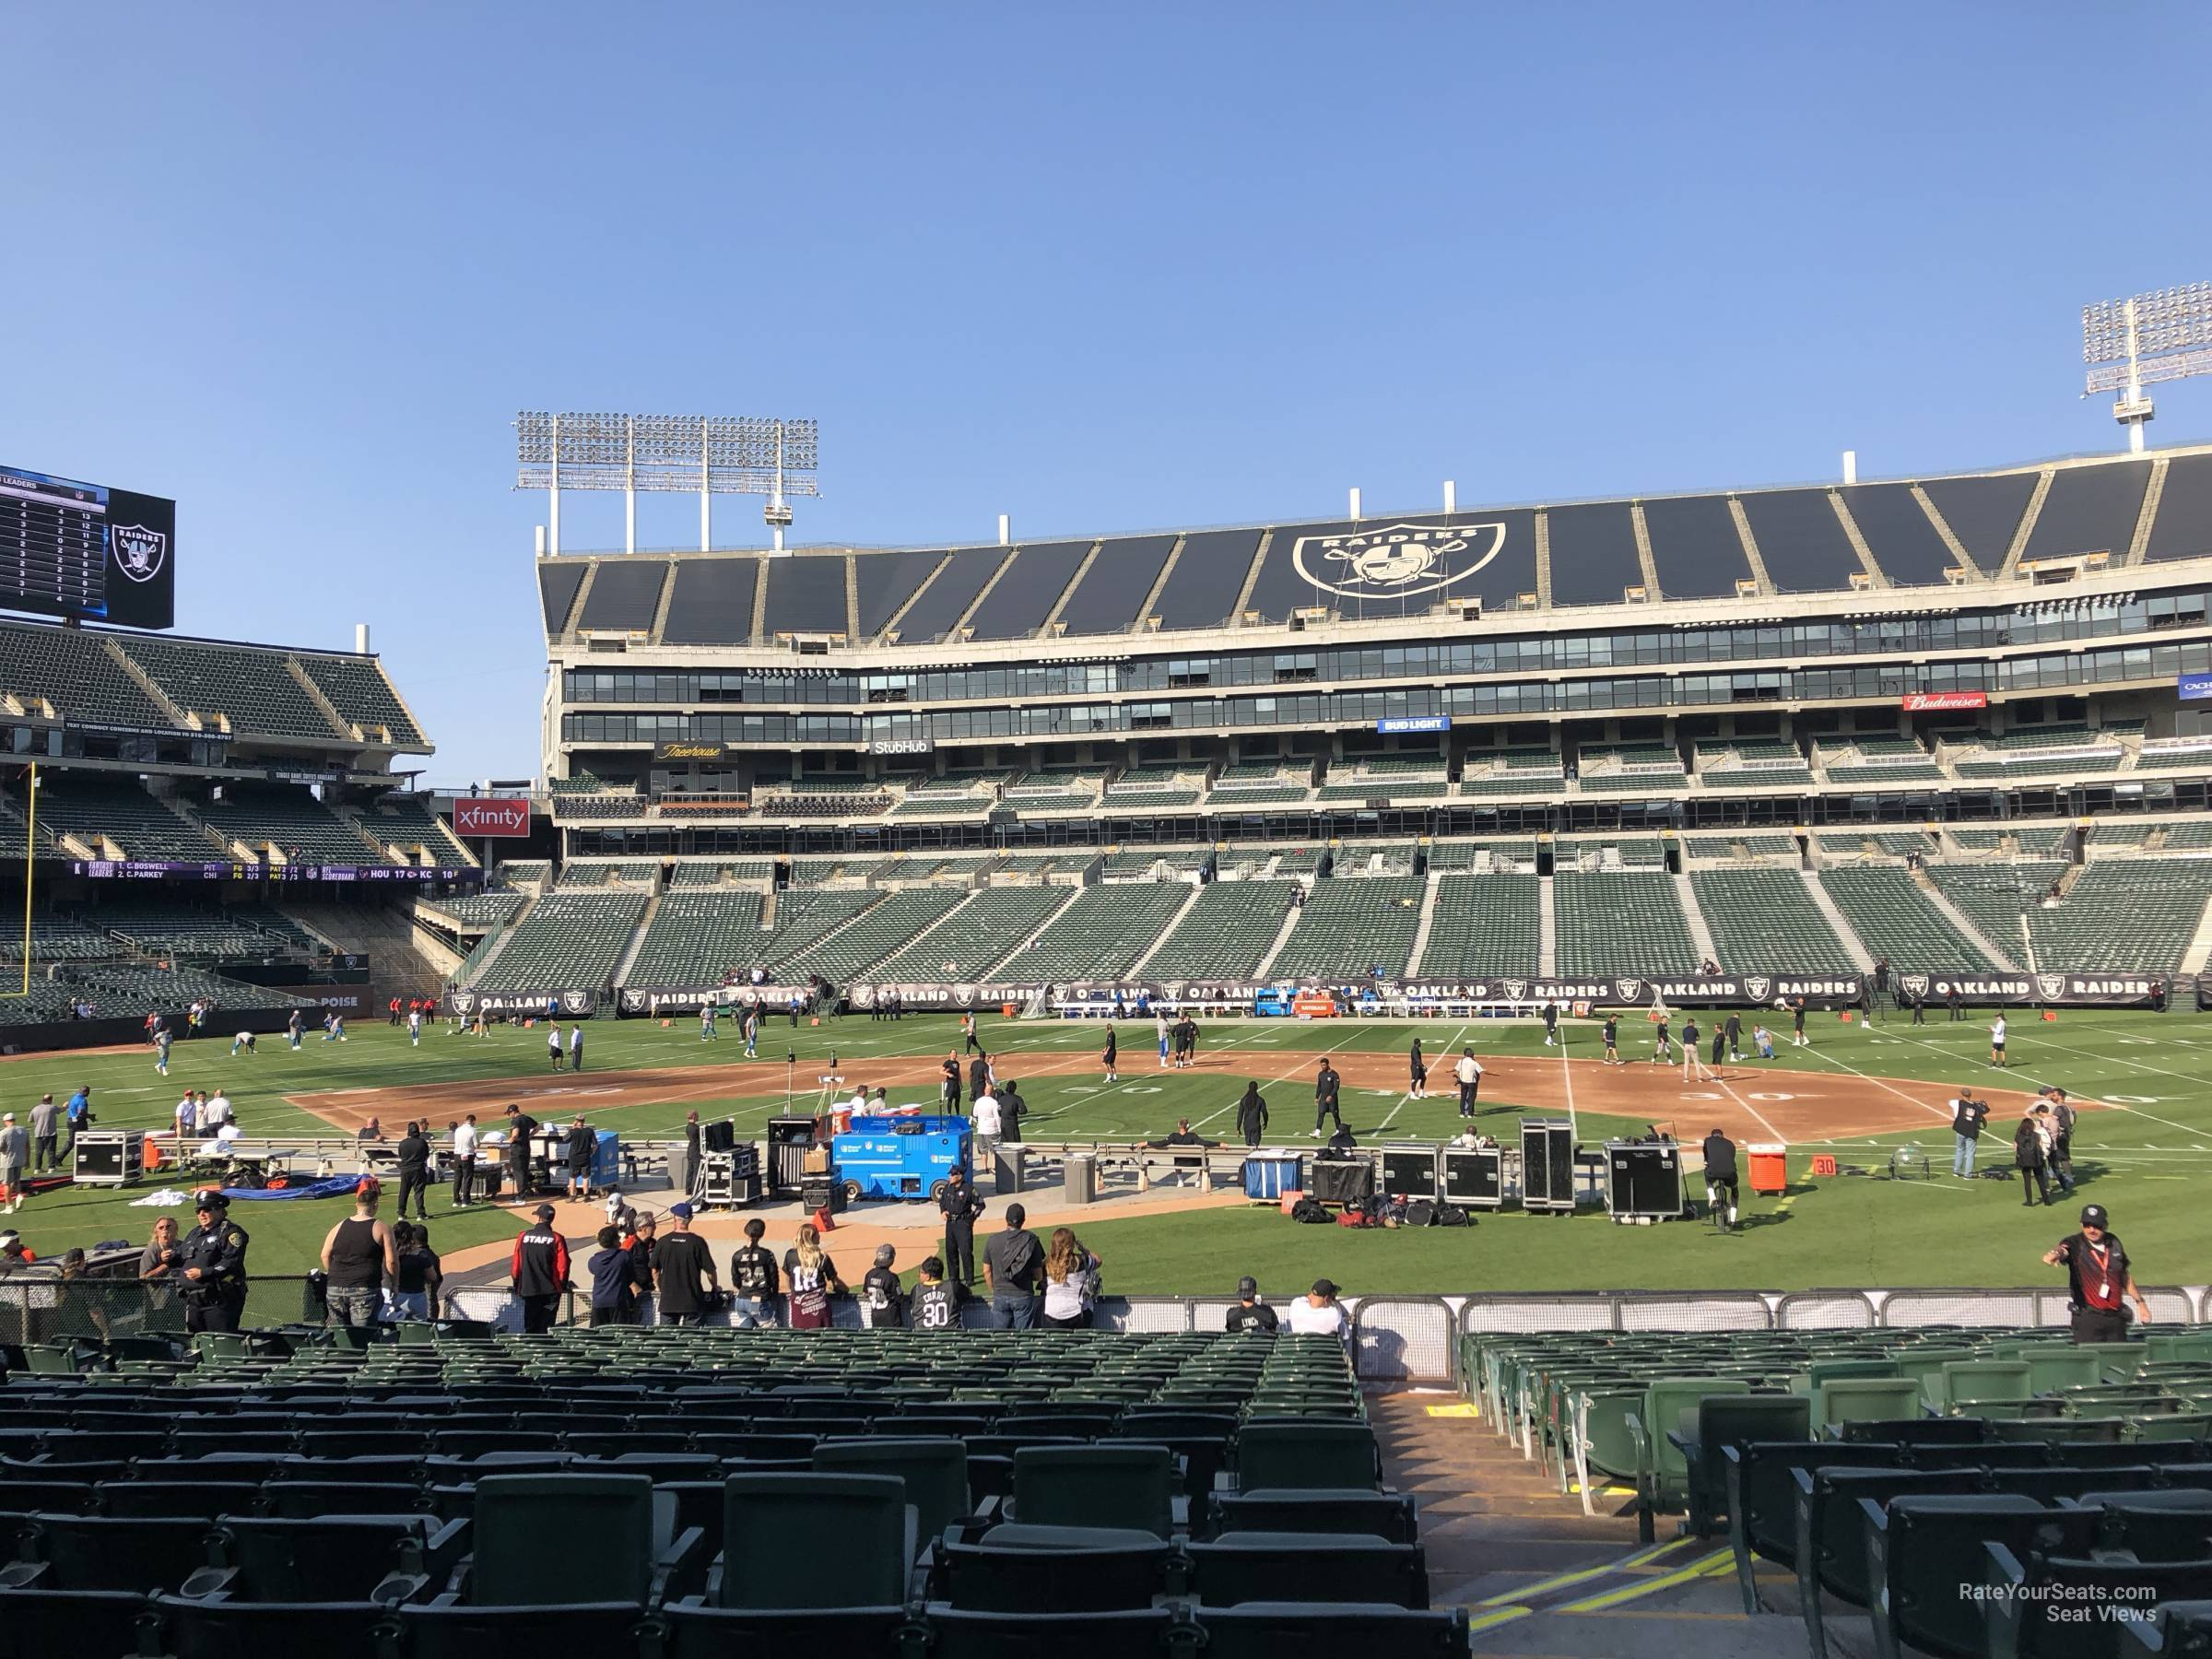 Oakland Raiders Seat View for Oakland Coliseum Section 115, Row 15